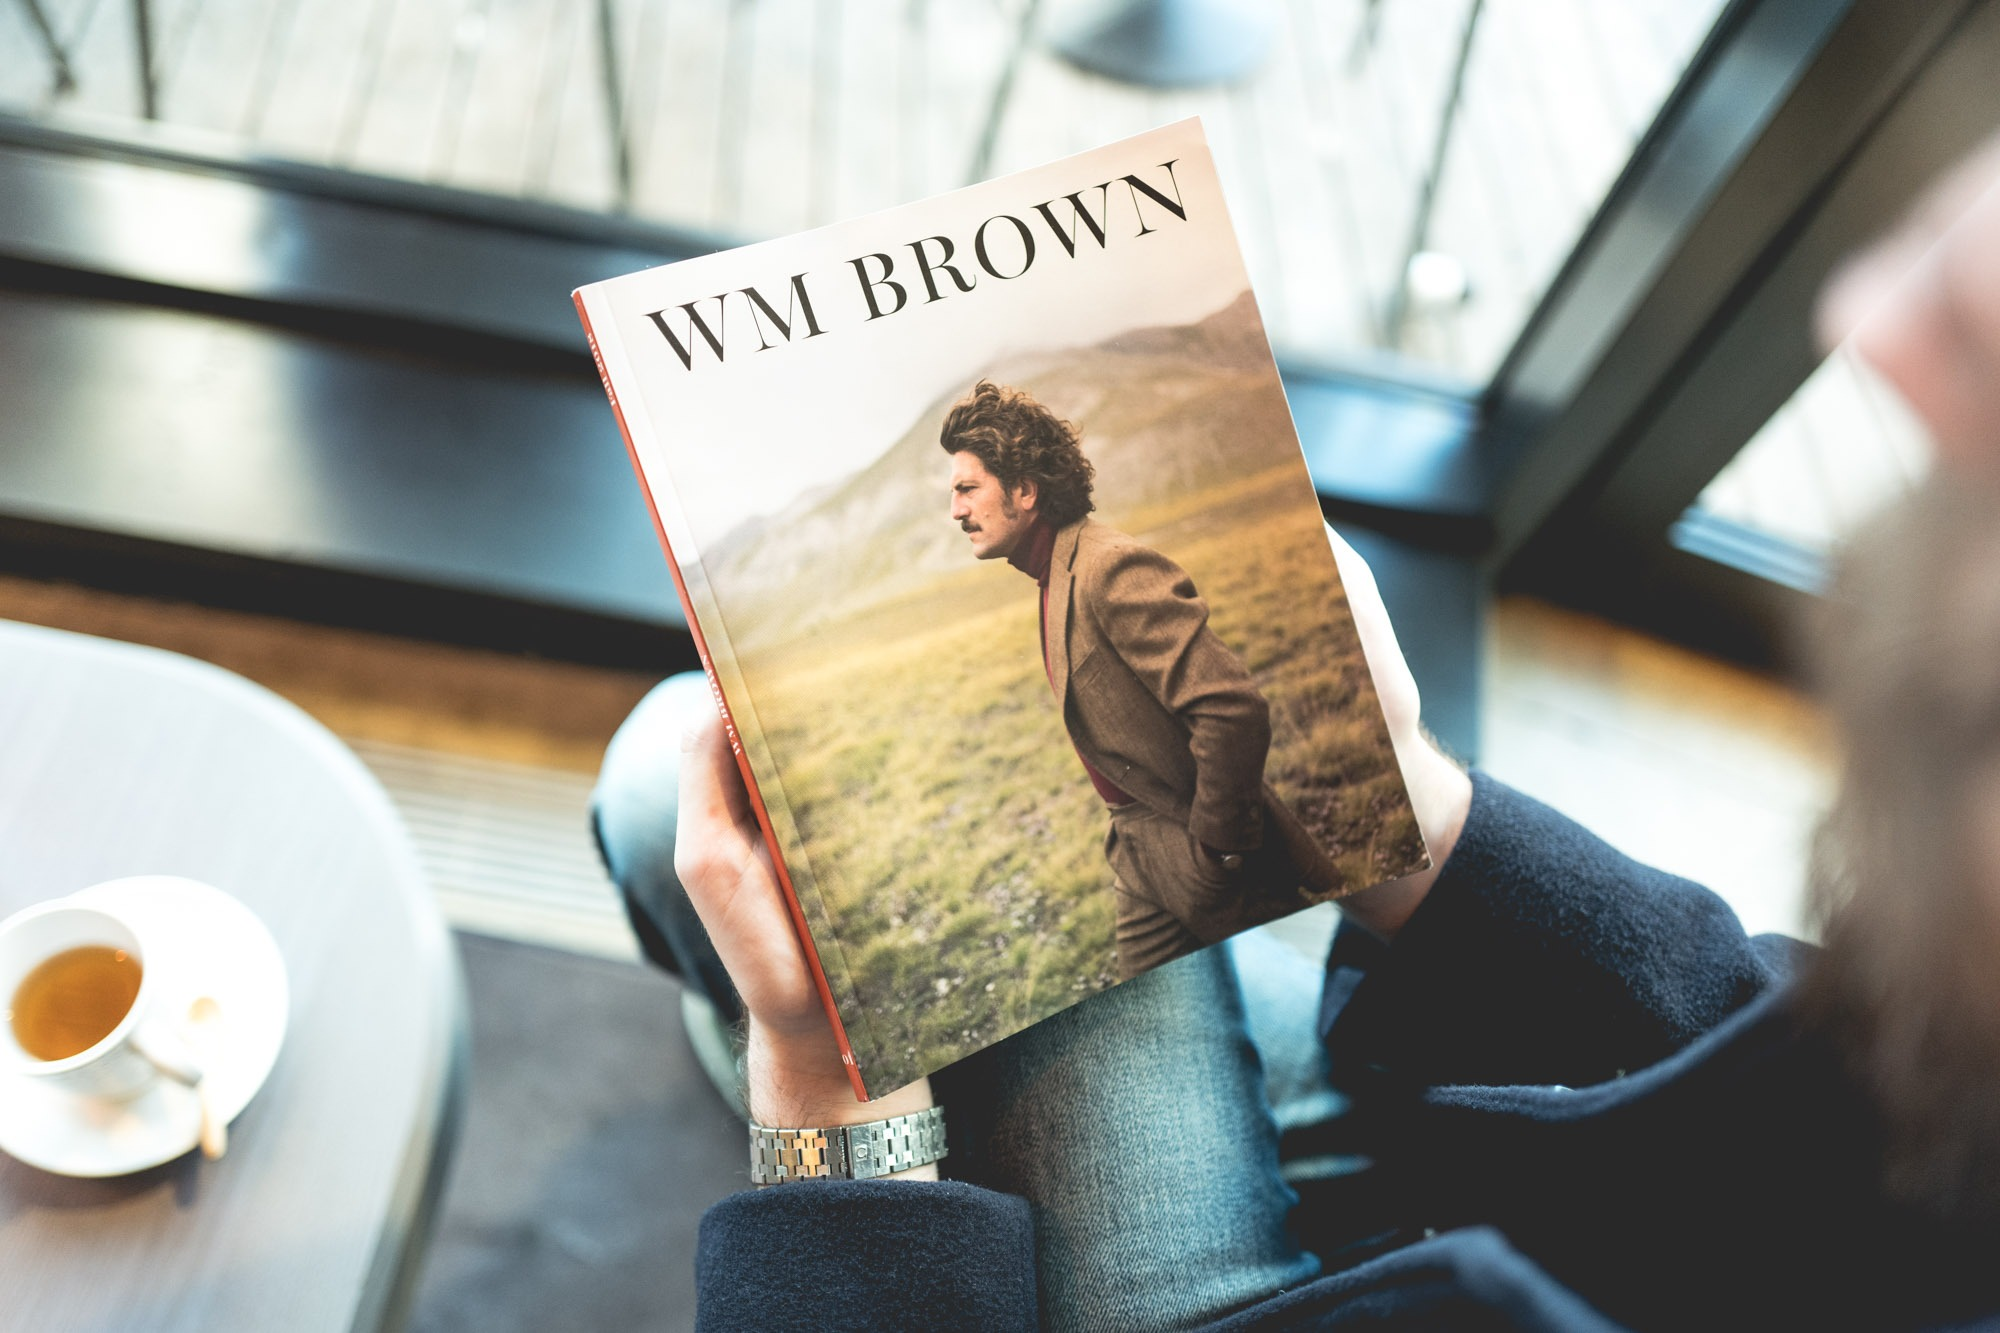 WM BROWN Magazine